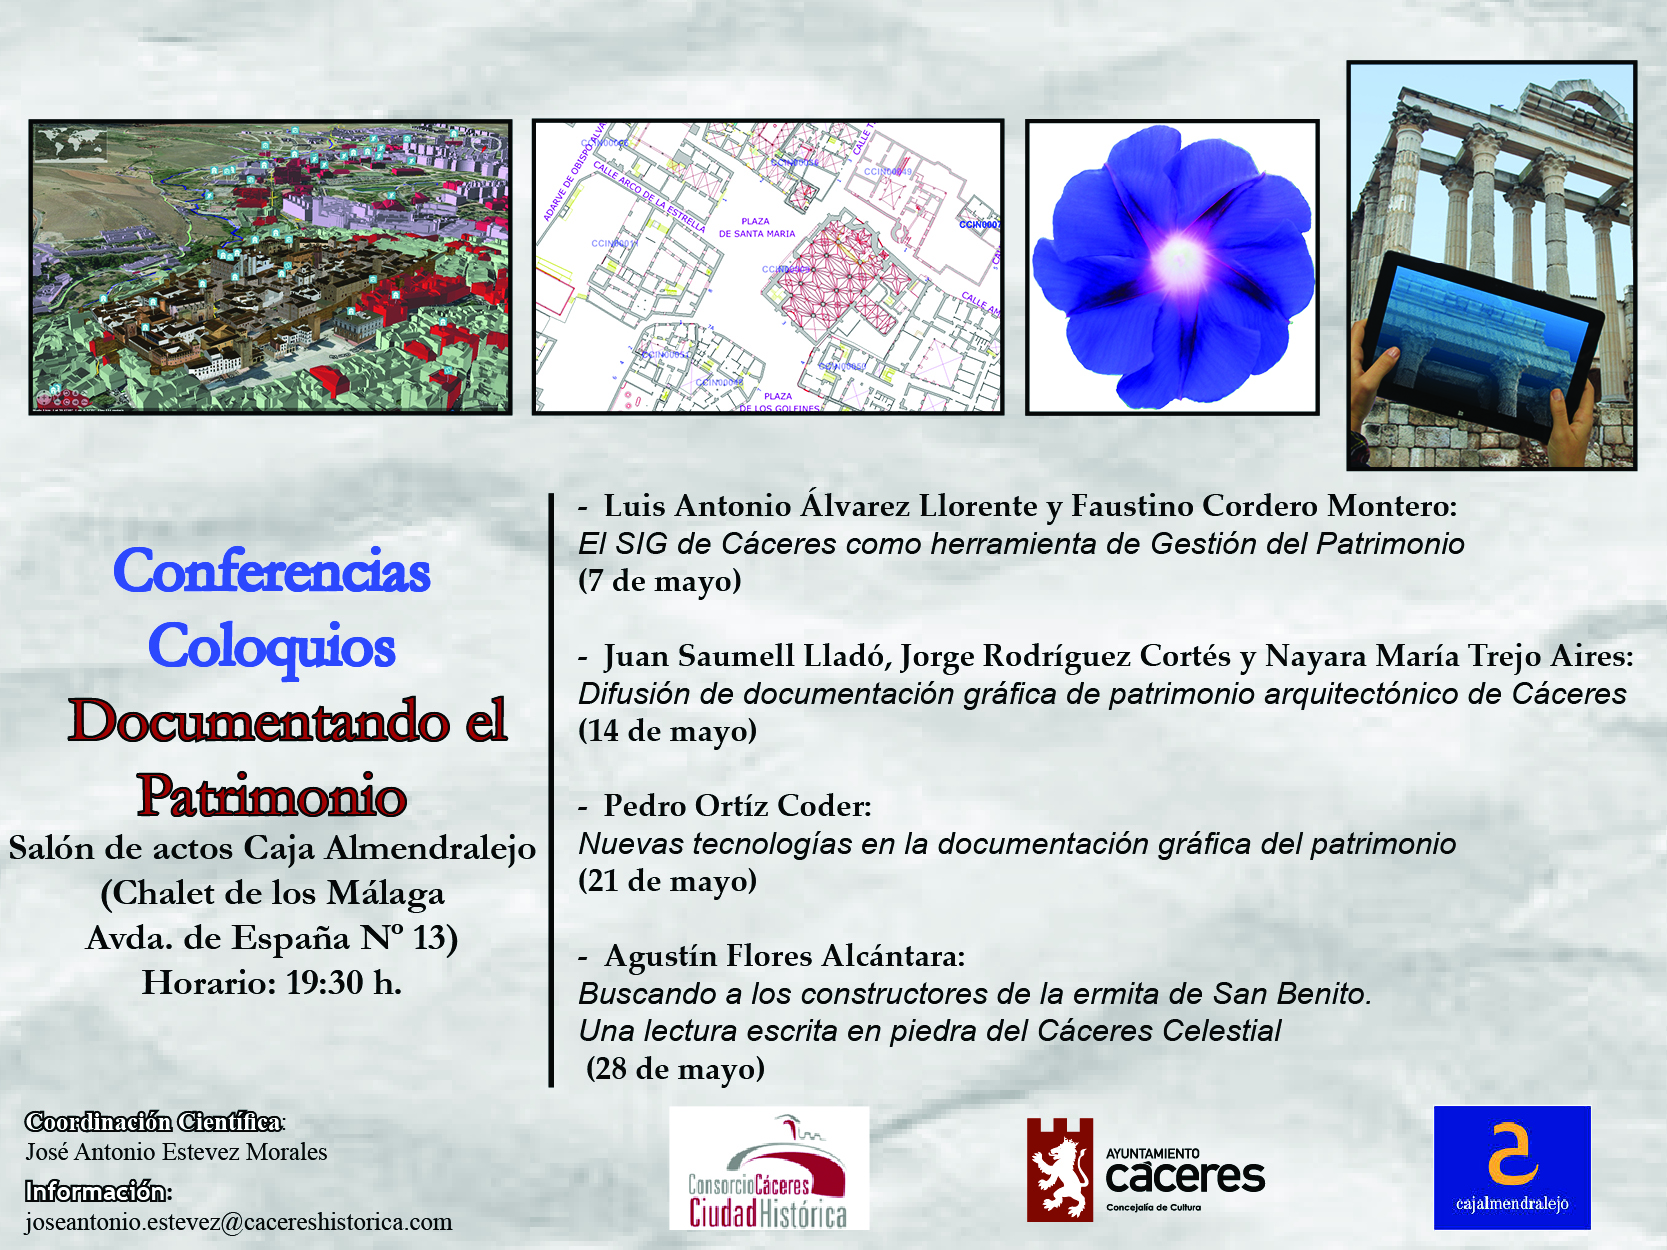 GIS Cáceres as a Tool for Heritage Management